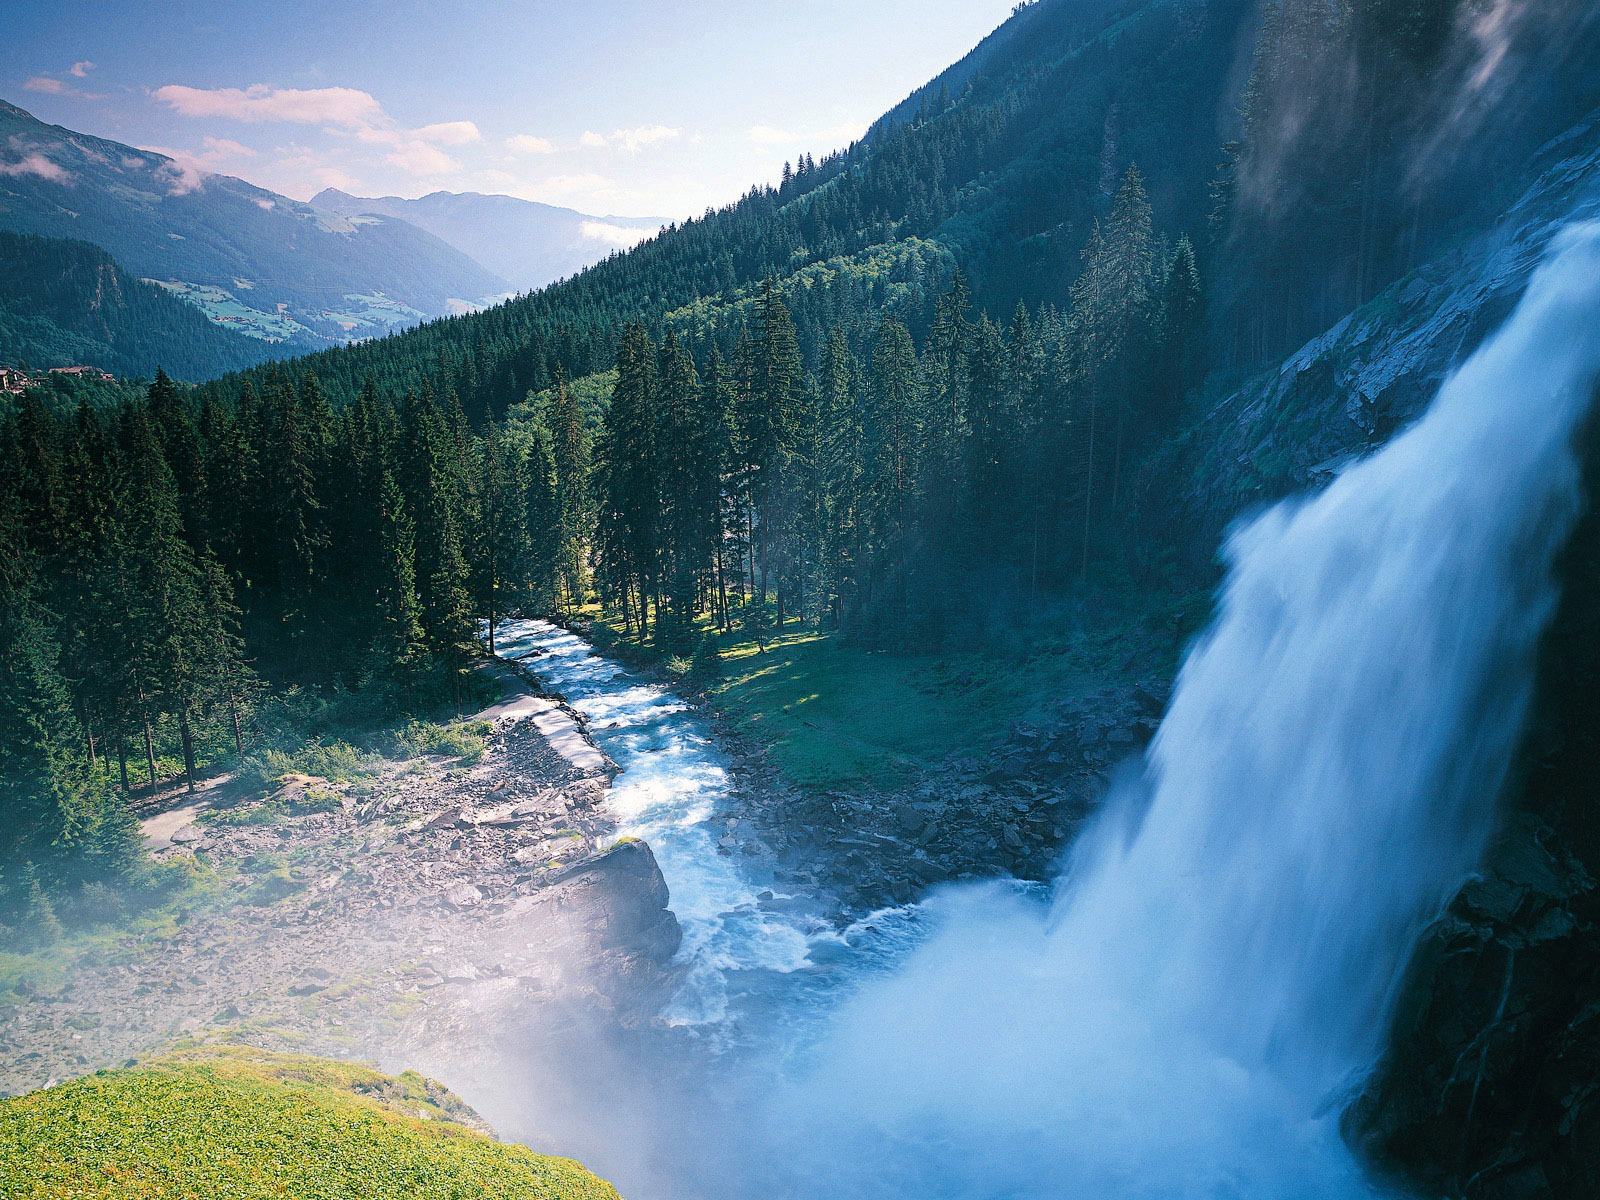 9 Spectacular Hd Waterfall Wallpapers To Download: Spectacular Waterfalls-Nature Landscape HD Wallpaper